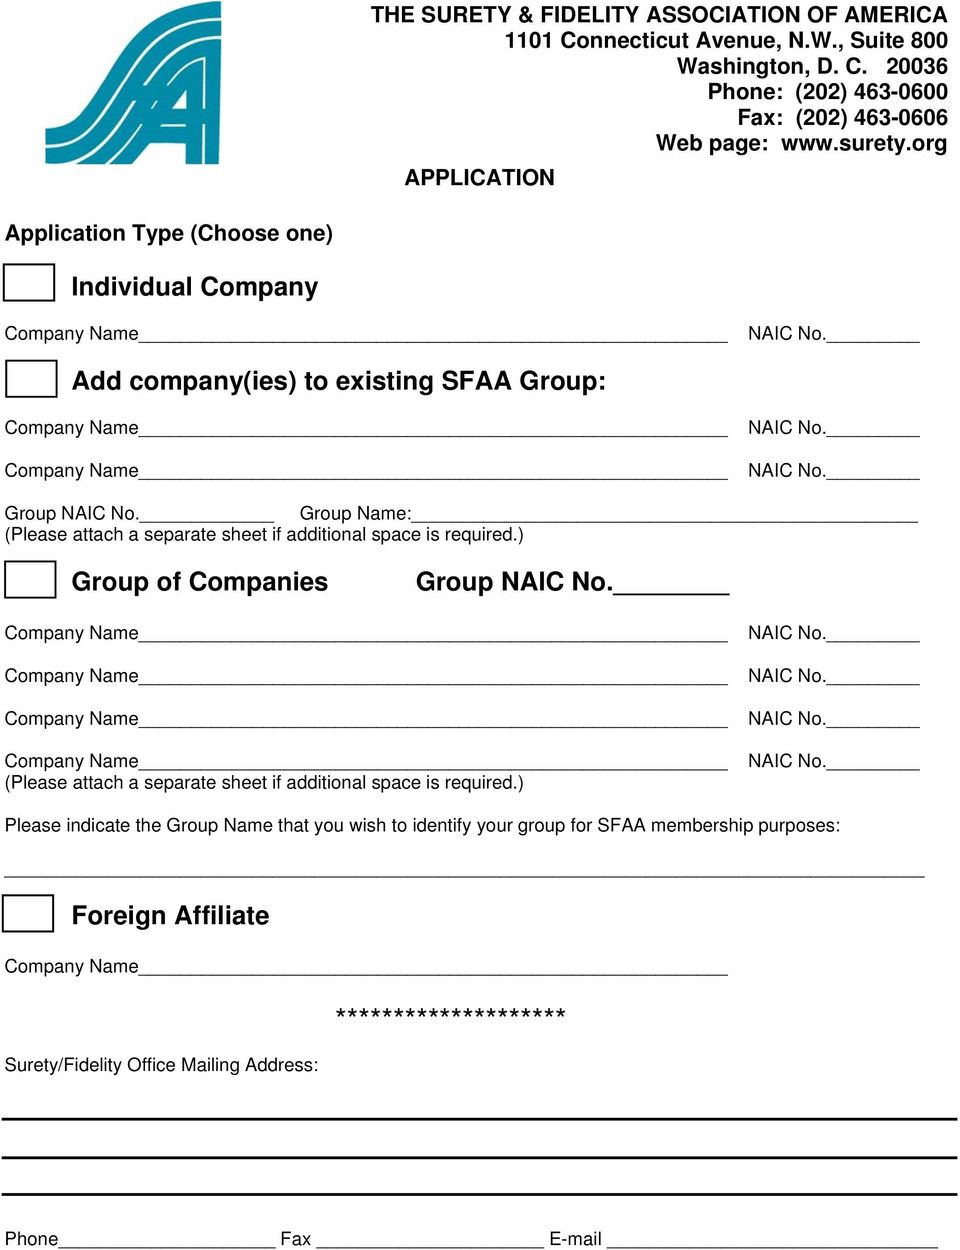 org APPLICATION Application Type (Choose one) Individual Company Add company(ies) to existing SFAA Group: Group Group Name: (Please attach a separate sheet if